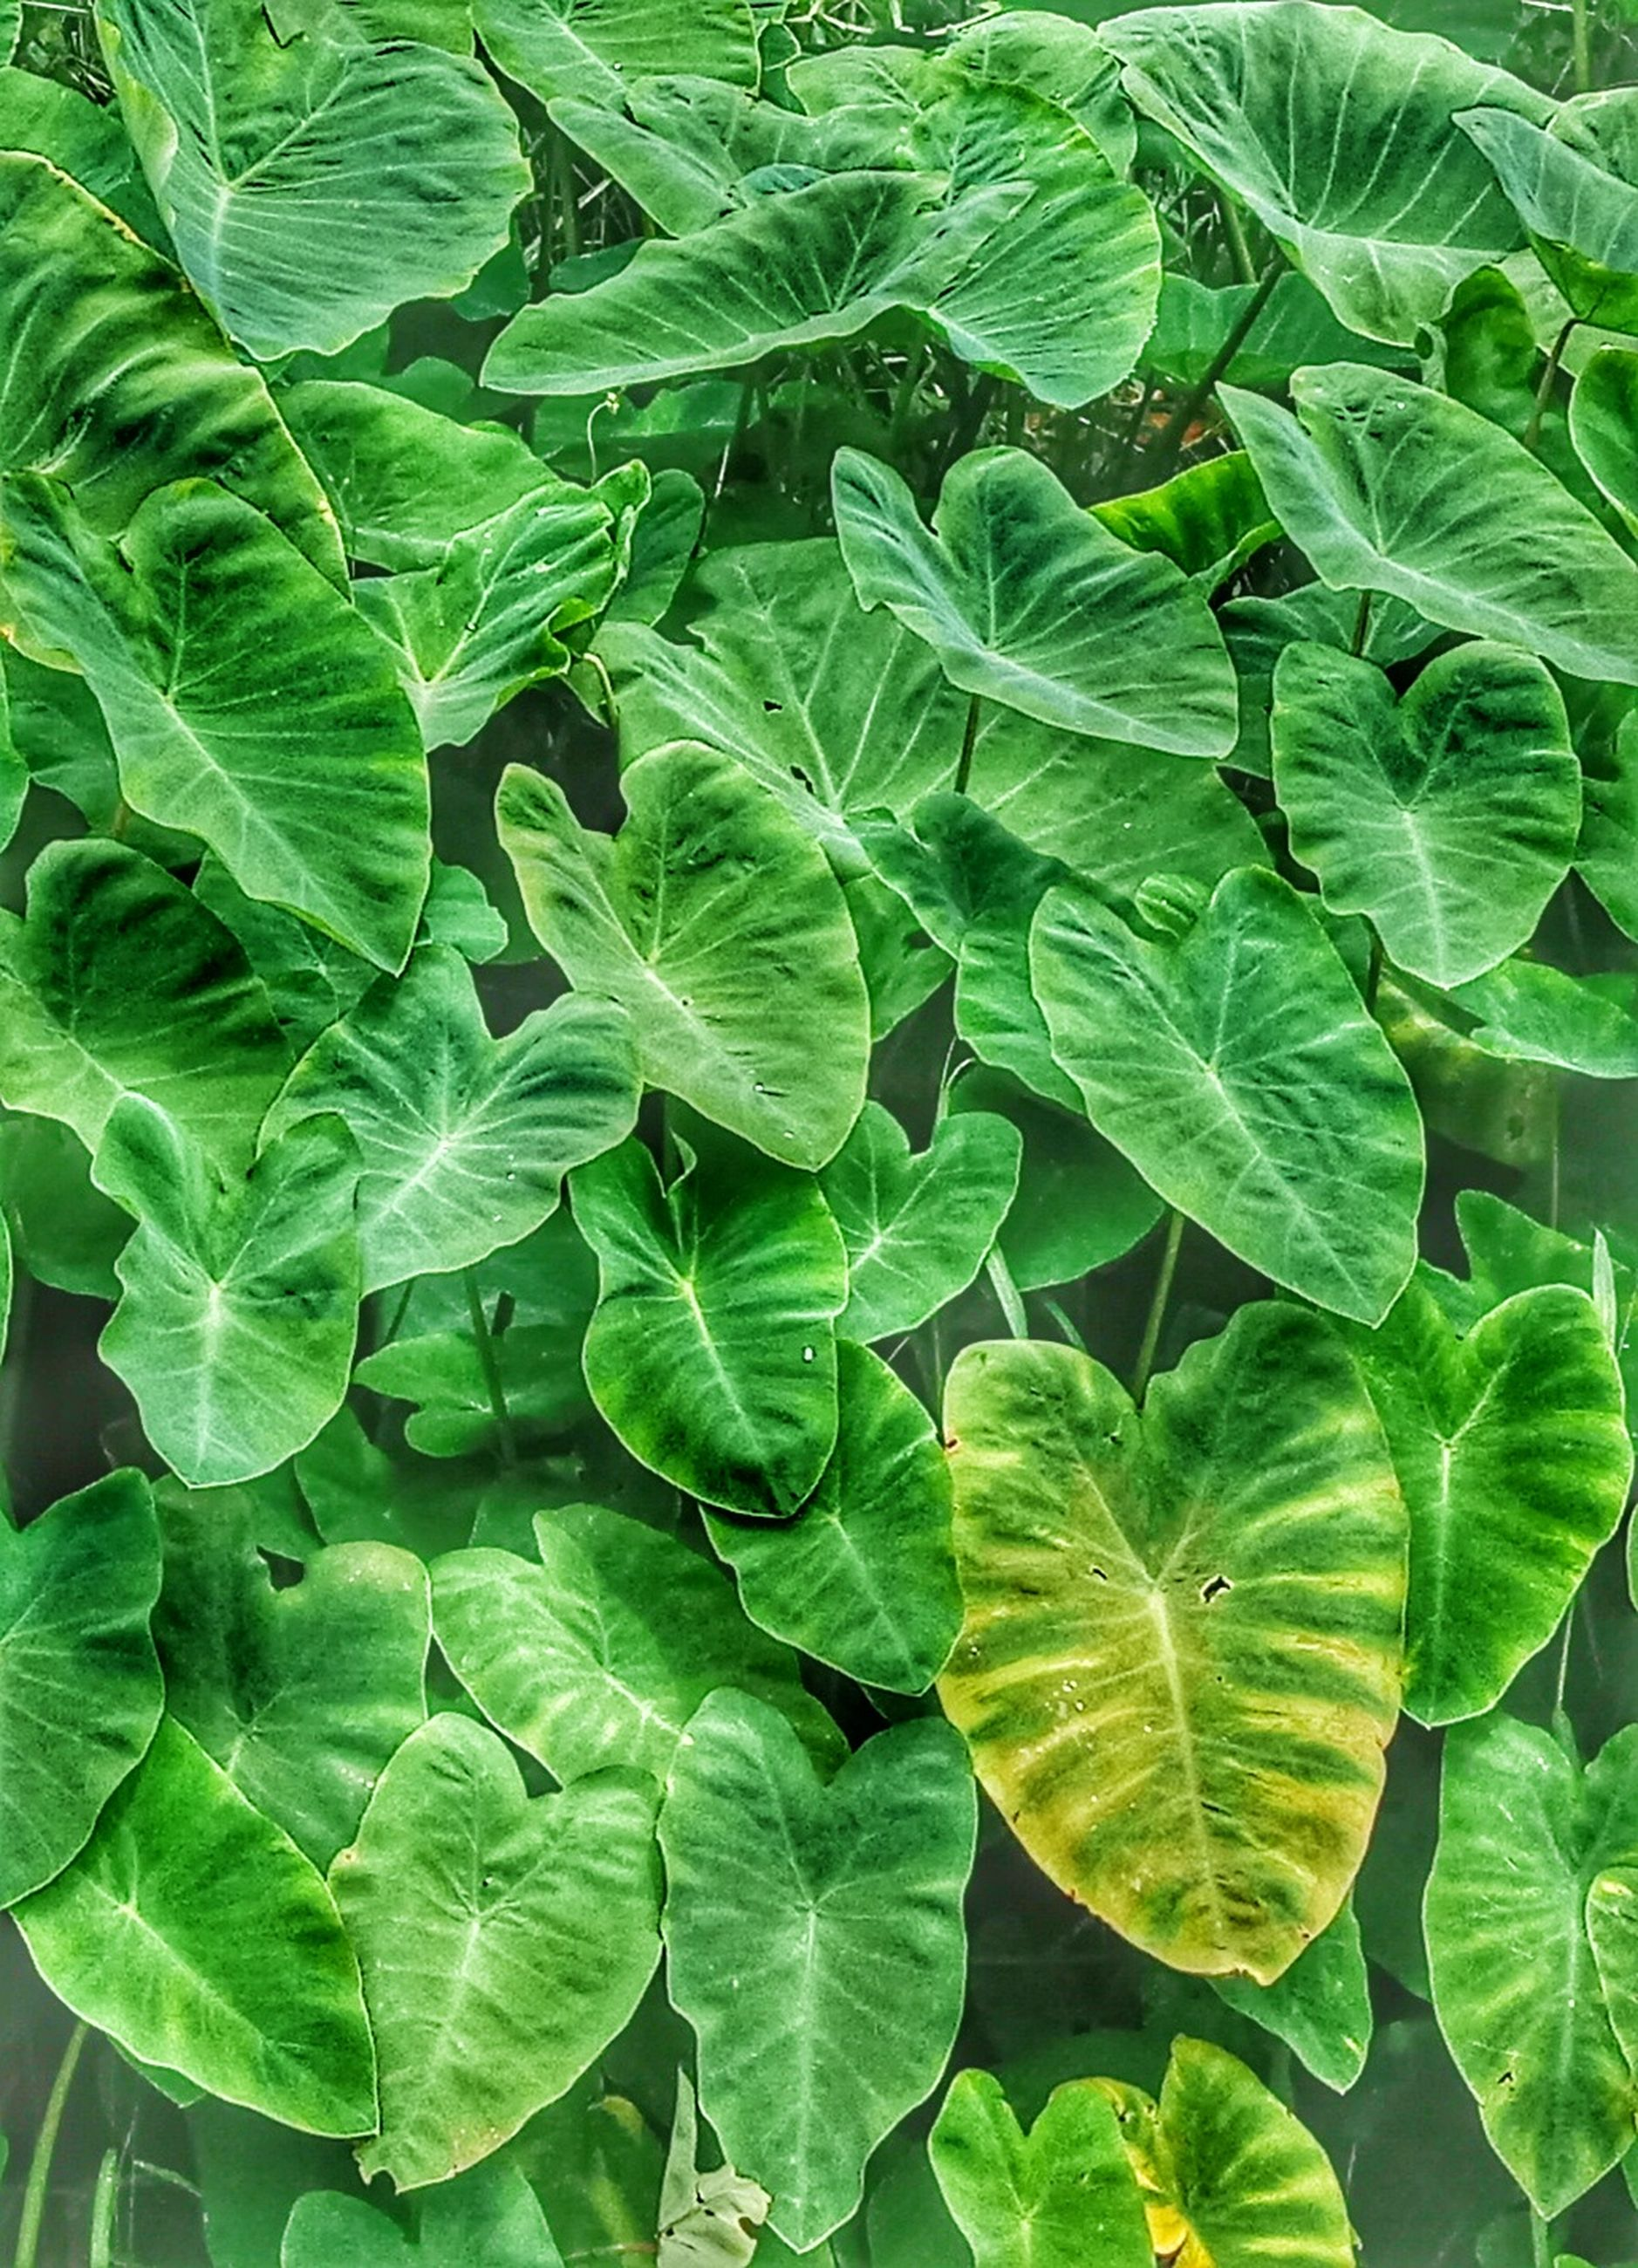 leaf, plant part, green color, growth, plant, freshness, nature, full frame, beauty in nature, no people, day, close-up, high angle view, vulnerability, fragility, outdoors, vegetable, food and drink, backgrounds, food, leaves